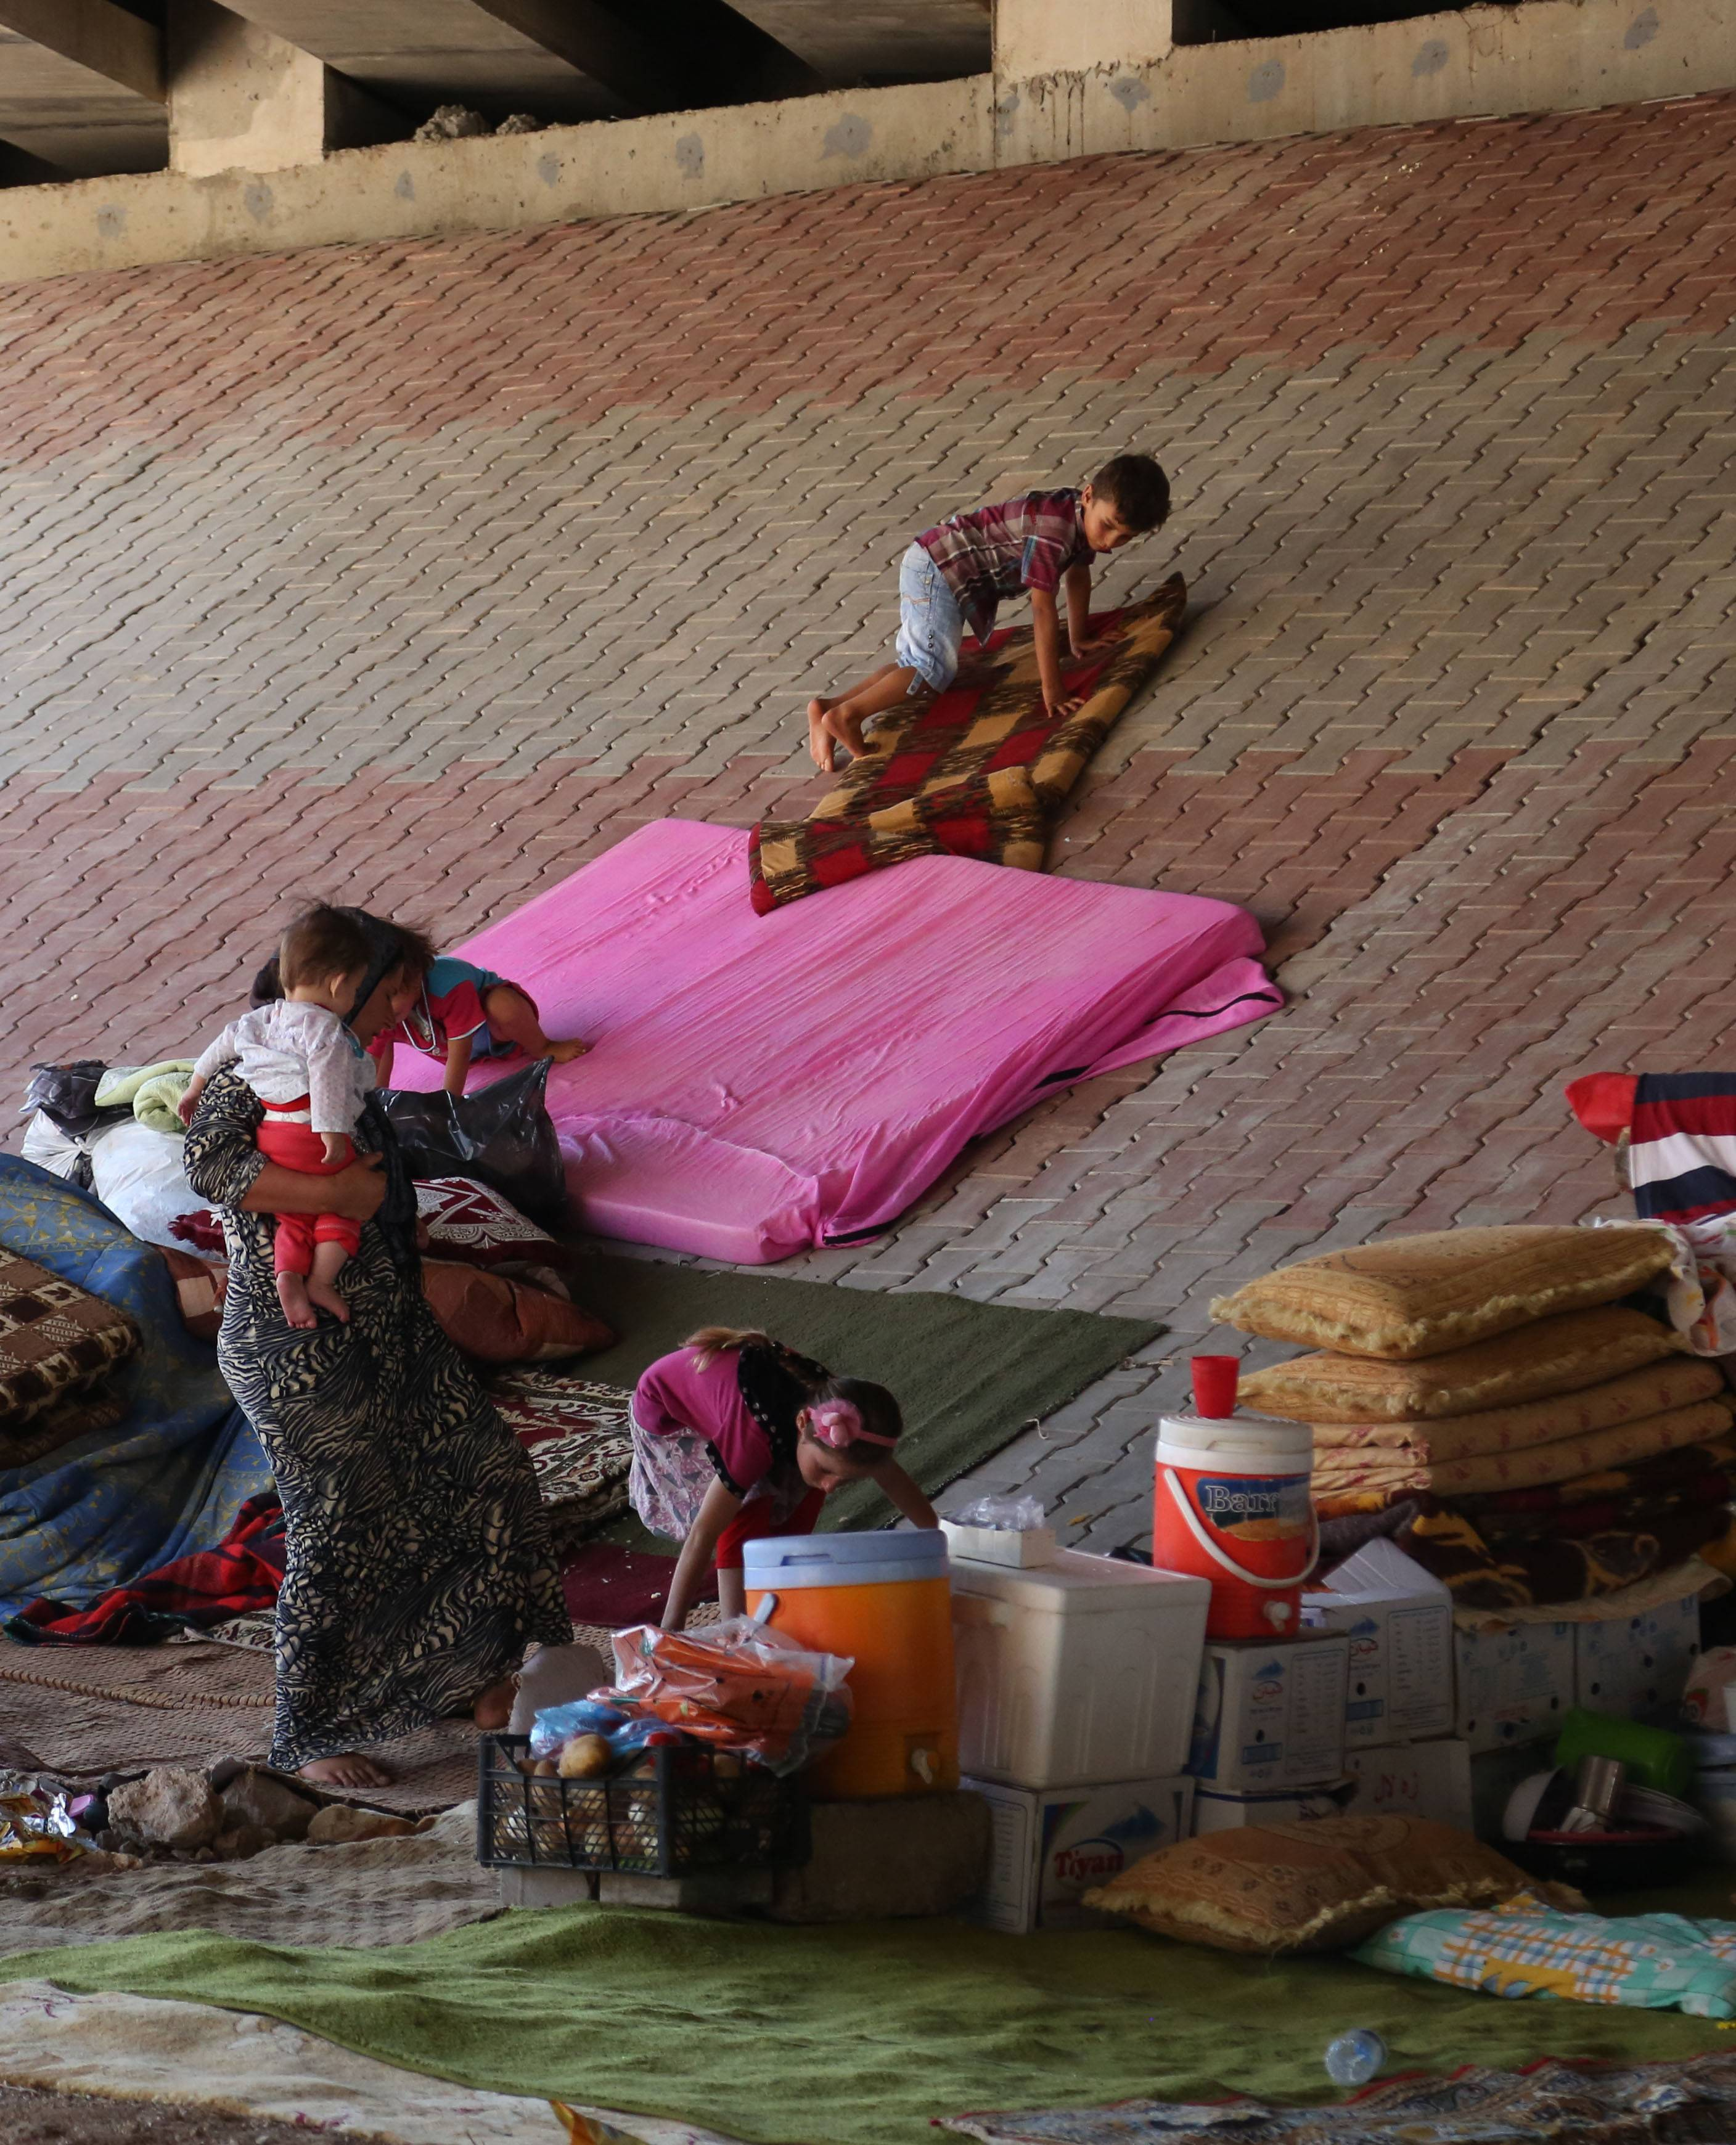 Displaced Iraqis from the Yazidi community settle under a bridge in Dahuk, 260 miles (430 kilometers) northwest of Baghdad, Iraq, Thursday, Aug. 14, 2014.